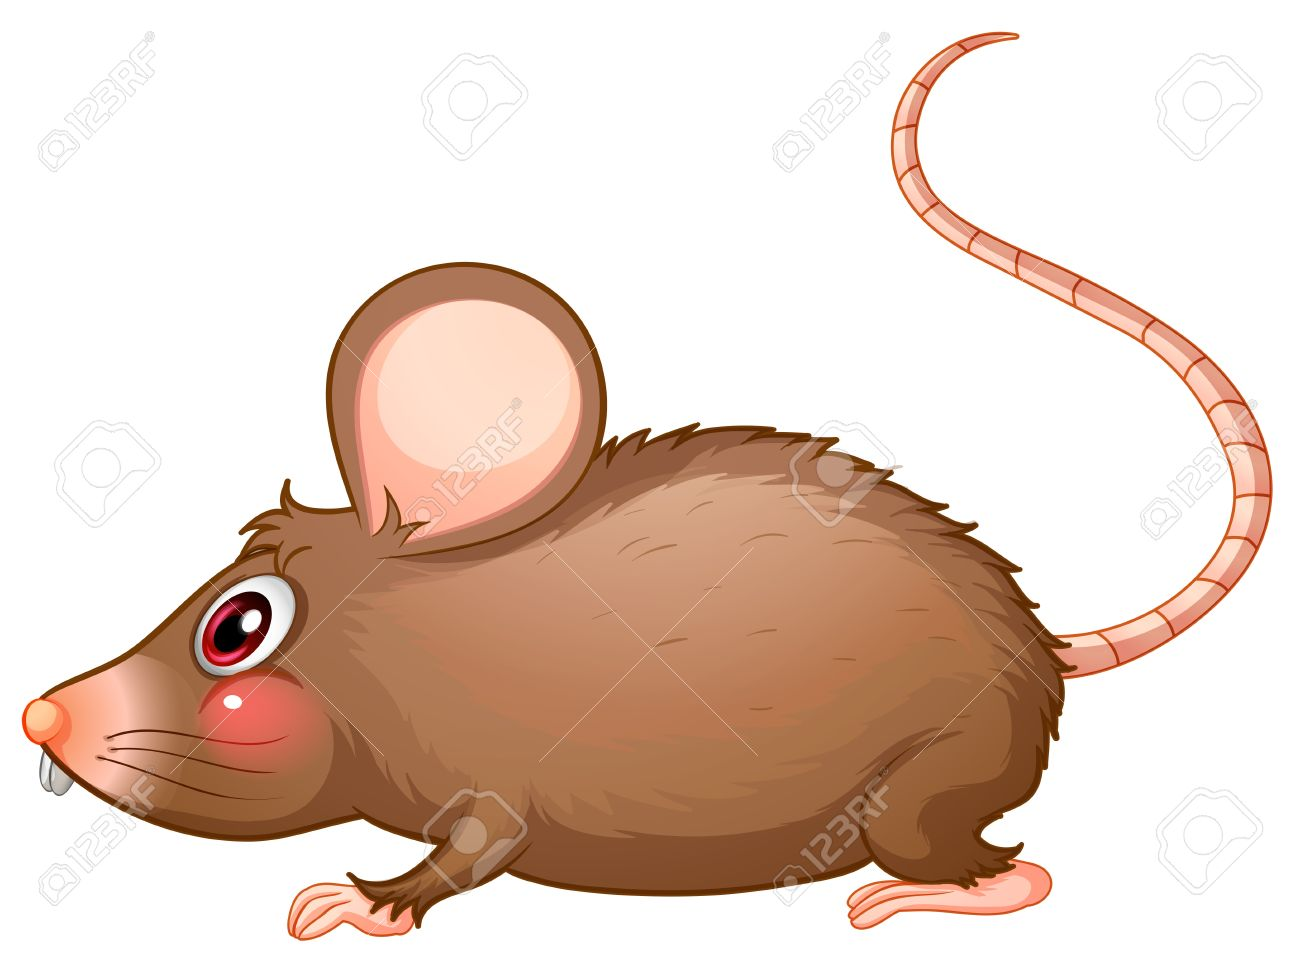 Illustration Of A Rat With A Long Tail On A White Background.